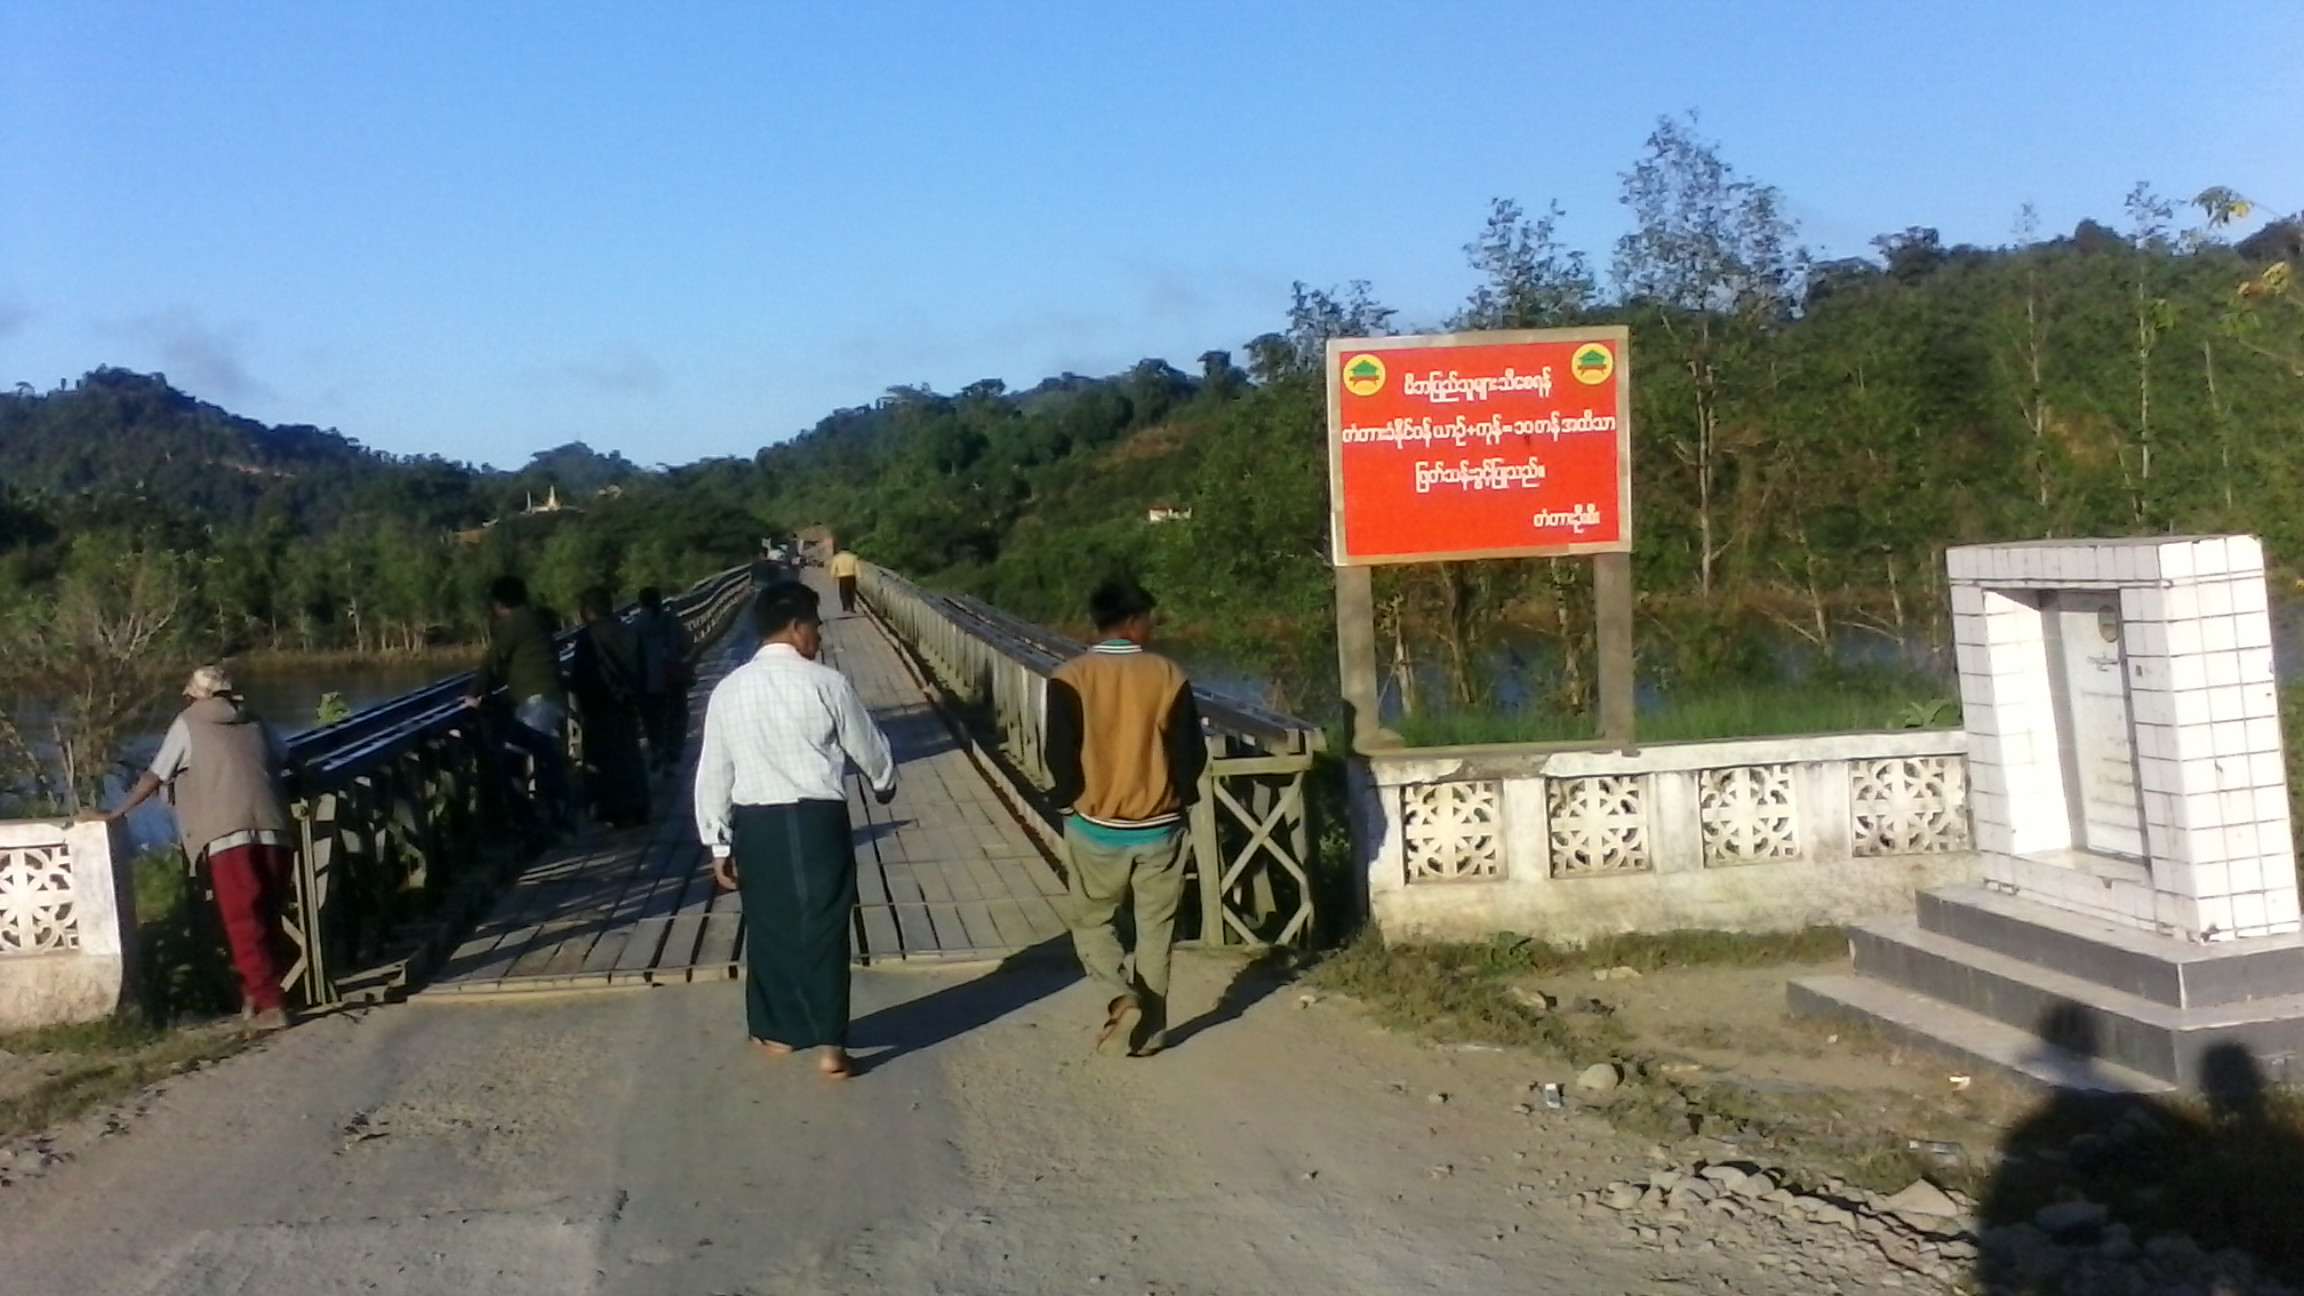 Mandalay to sittwe by bus